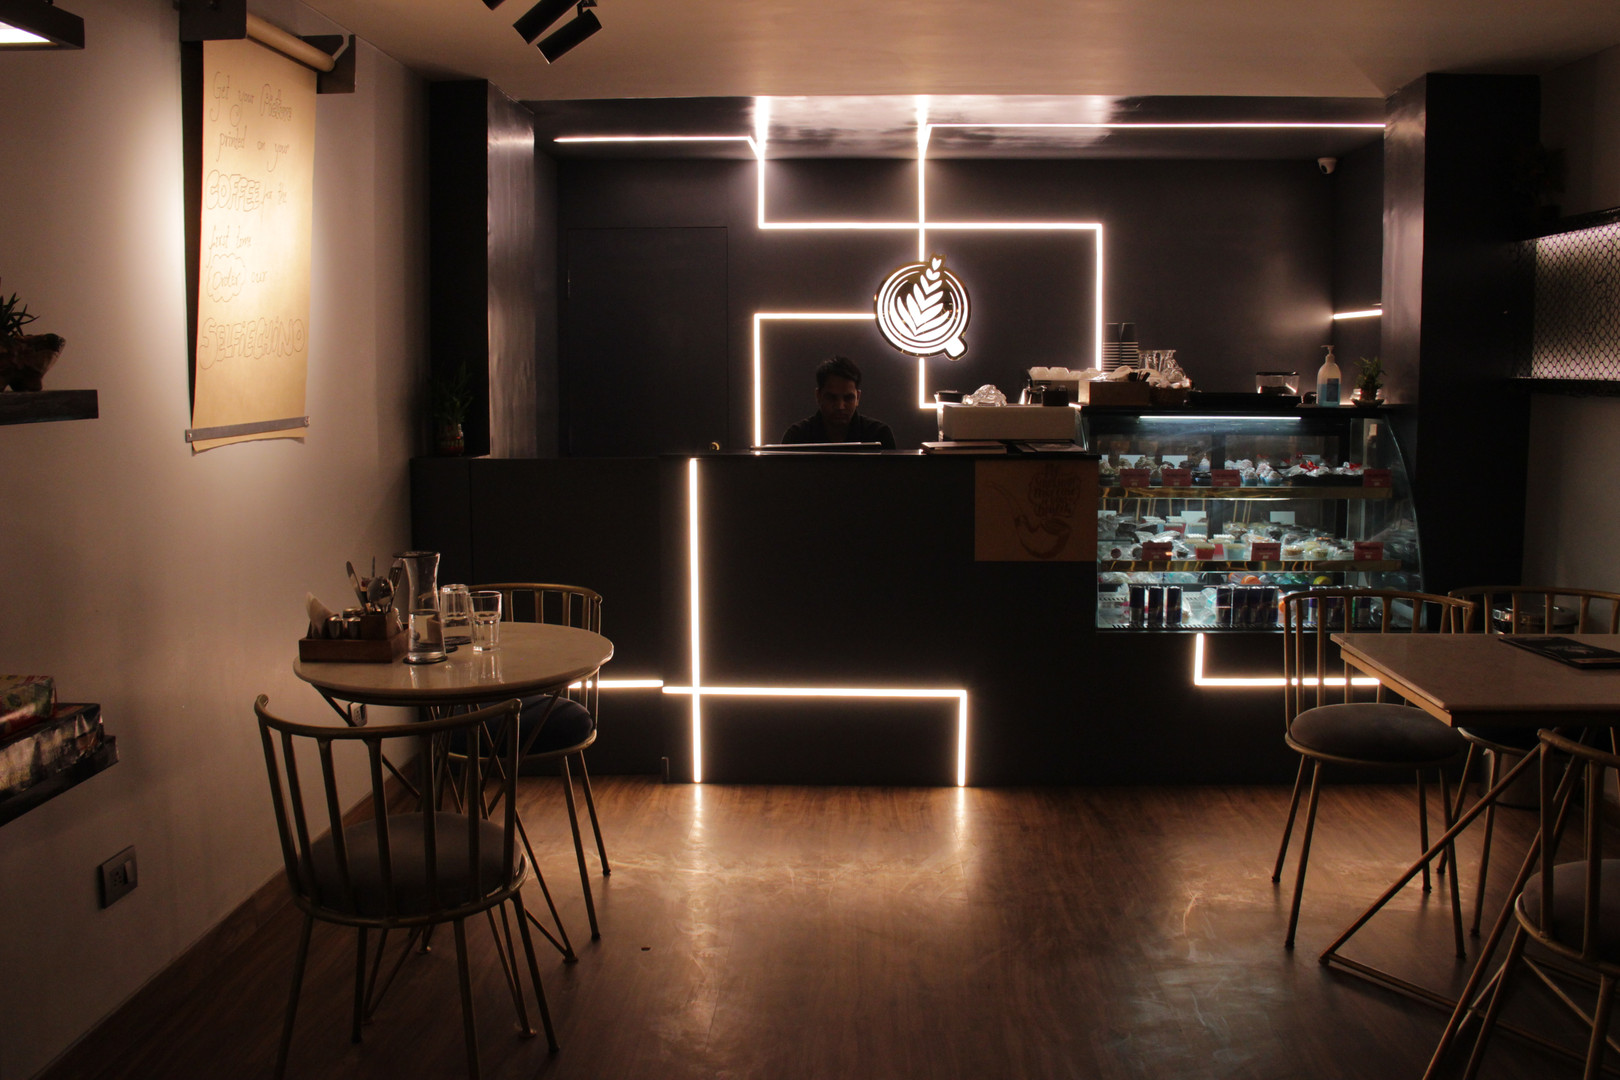 logo and menu graphics embeded in wall with lights